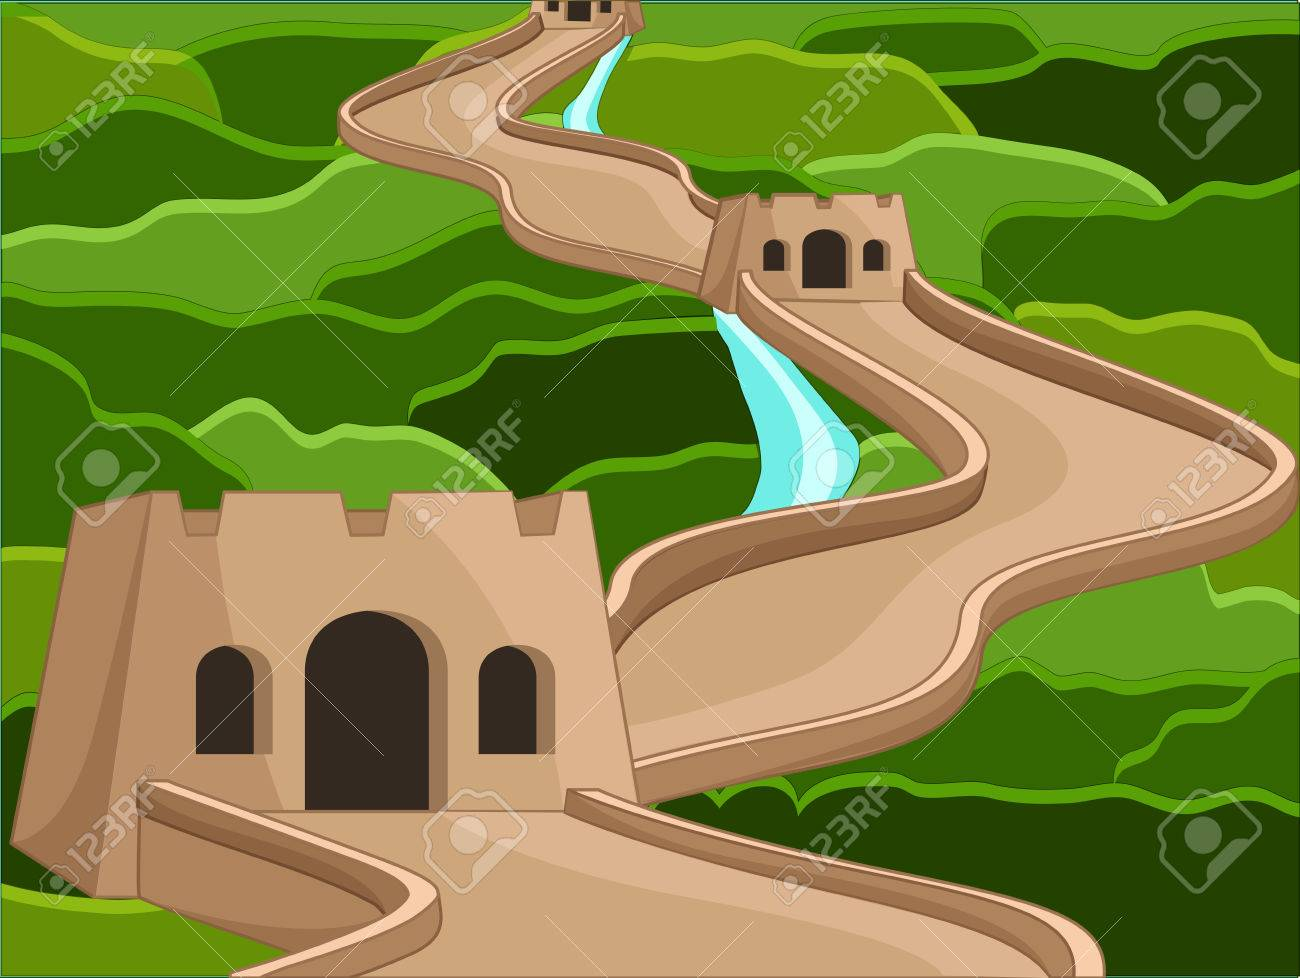 ancient great wall of china structure illustration royalty free rh 123rf com Mexican Wall great wall of china clipart free